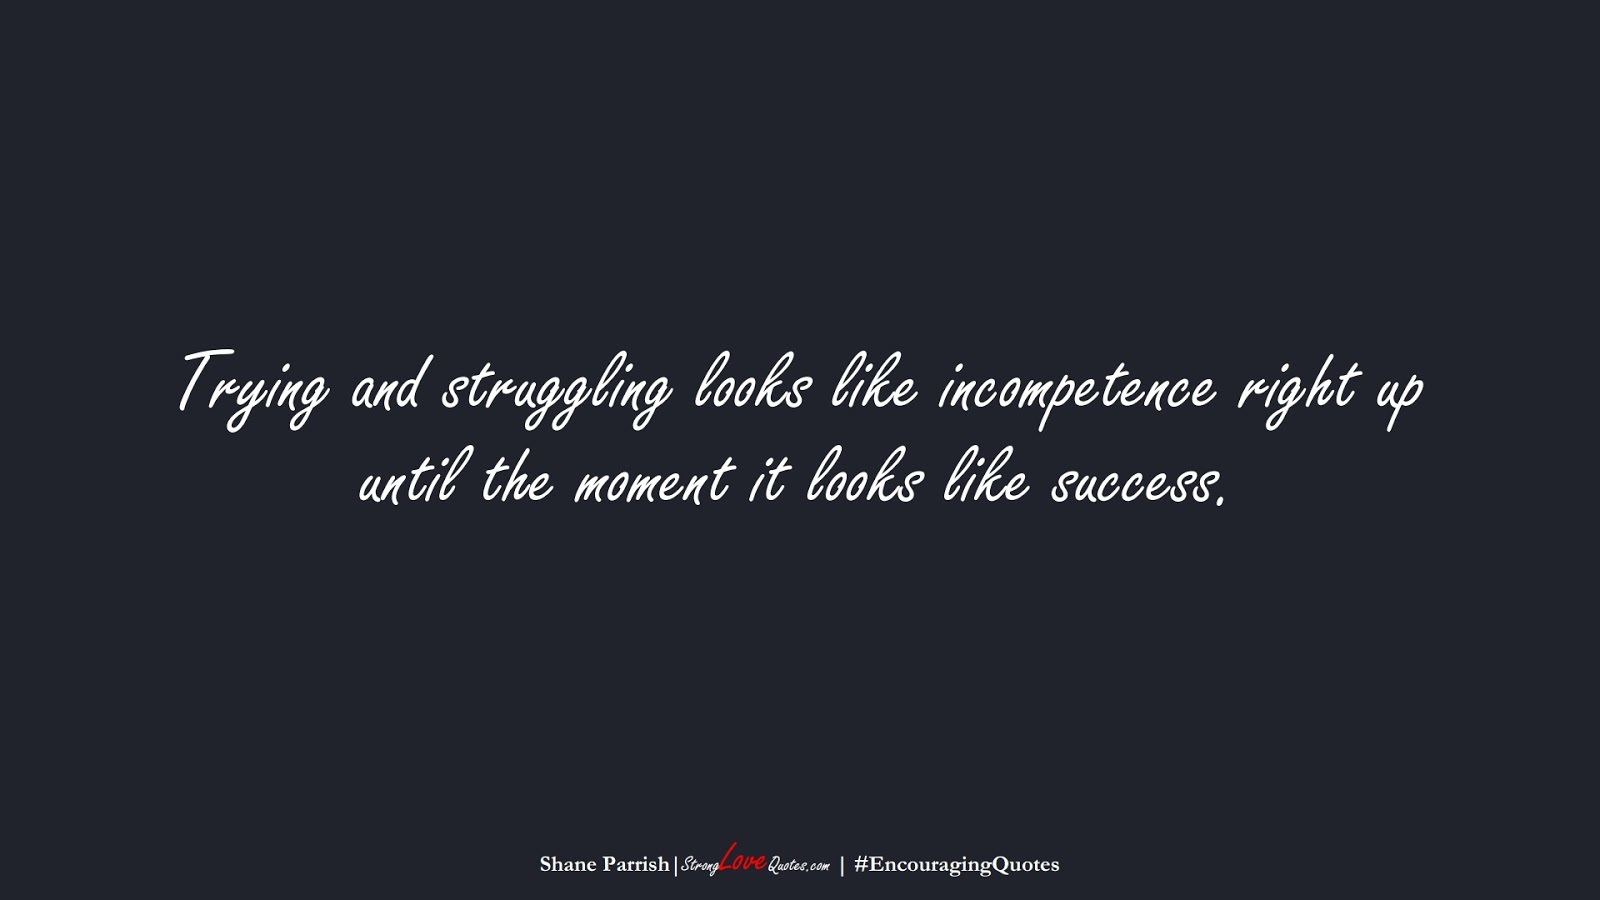 Trying and struggling looks like incompetence right up until the moment it looks like success. (Shane Parrish);  #EncouragingQuotes